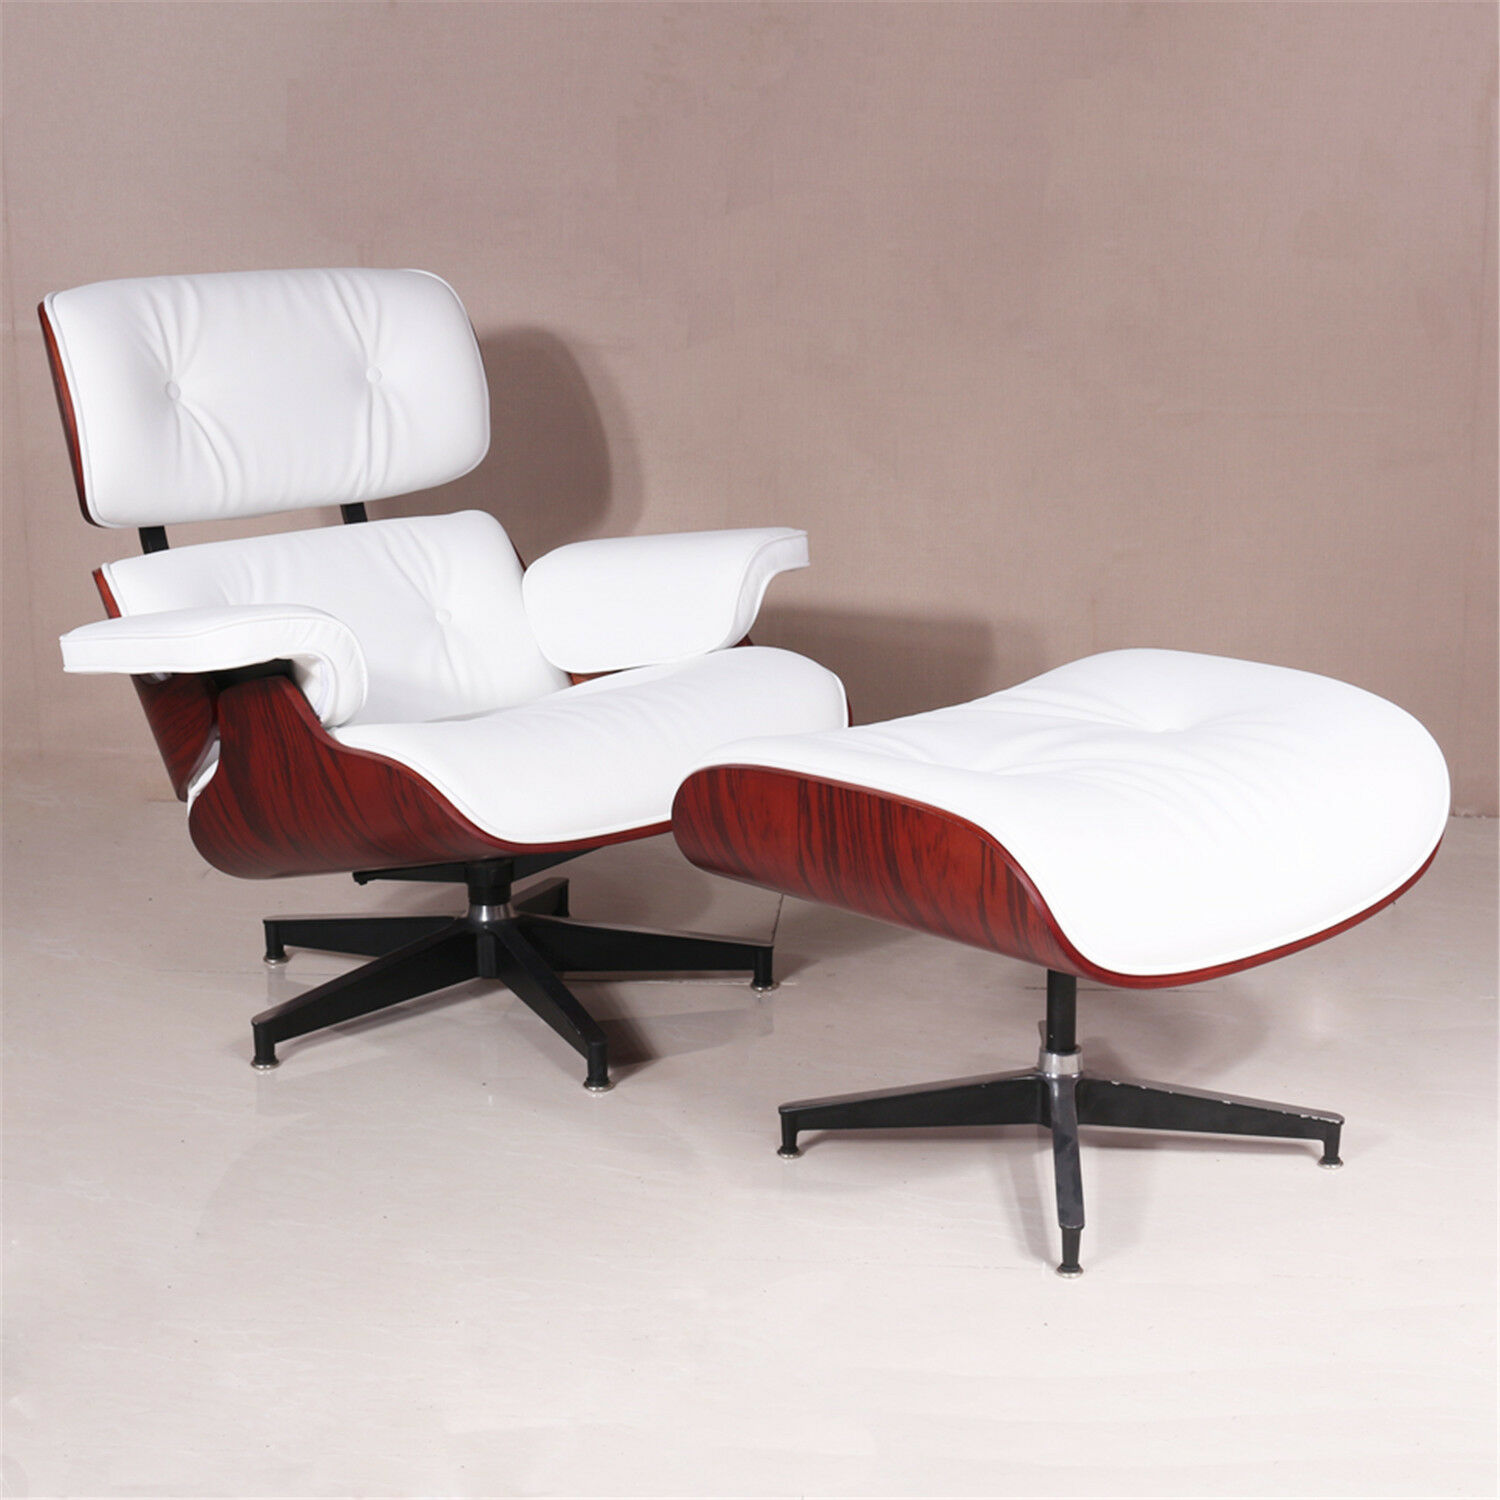 Magnificent Details About Top Rosewood Lounge Chair Ottoman Eames White Full Grain Leather Ncnpc Chair Design For Home Ncnpcorg